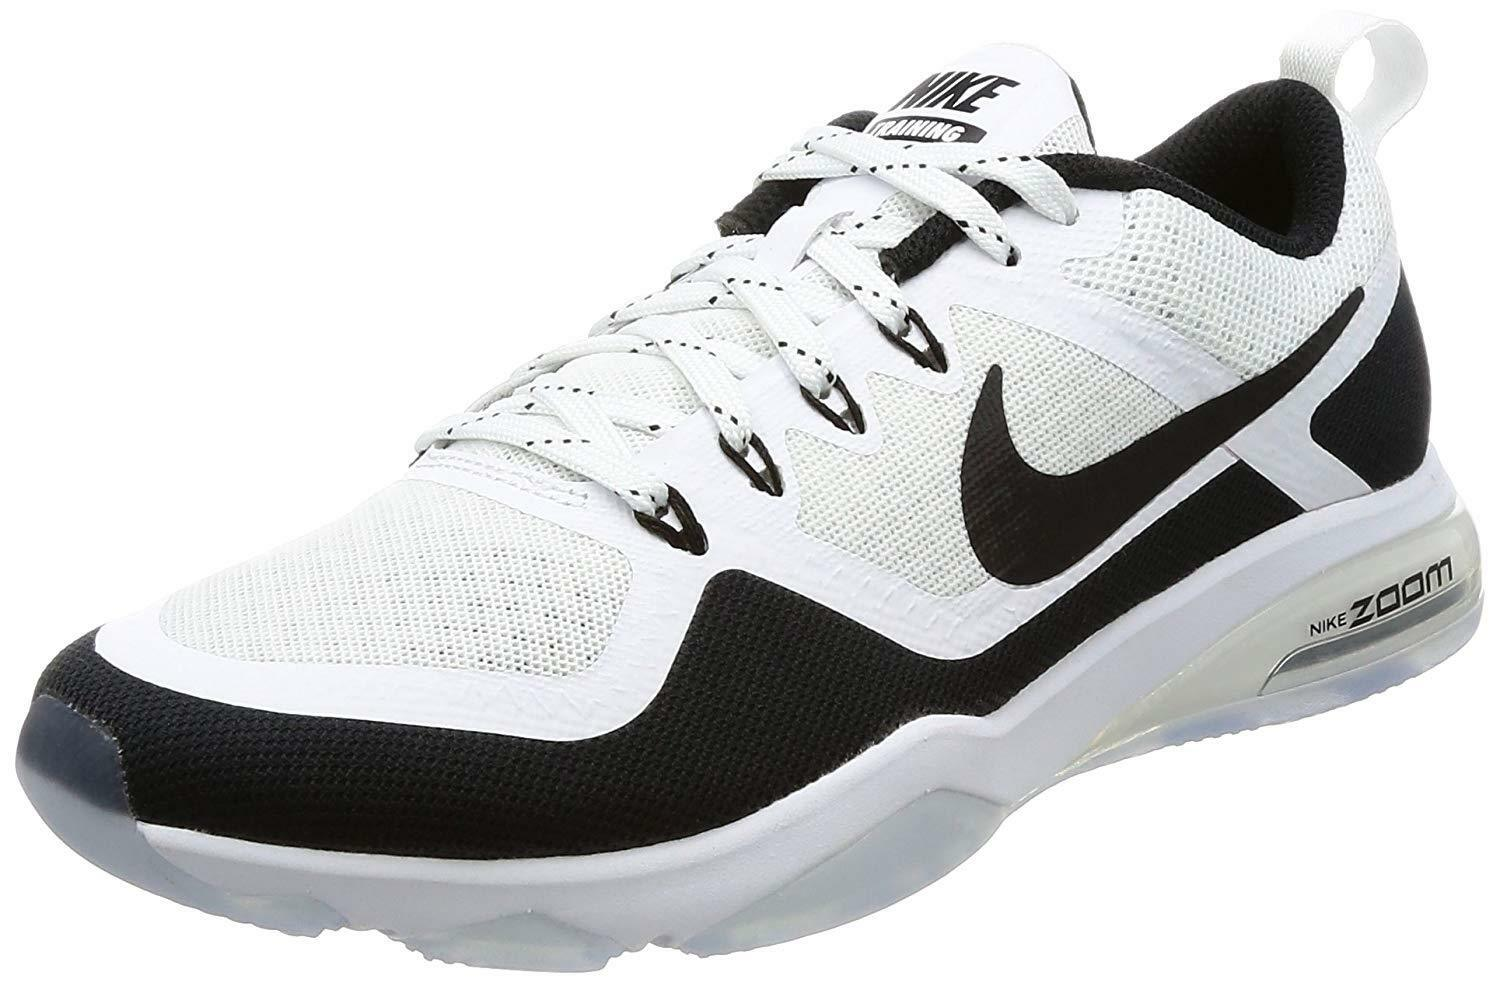 WMNS NIKE Women's Zoom Fitness Training Shoe 904645 100 Size 8 Retail $100 NEW